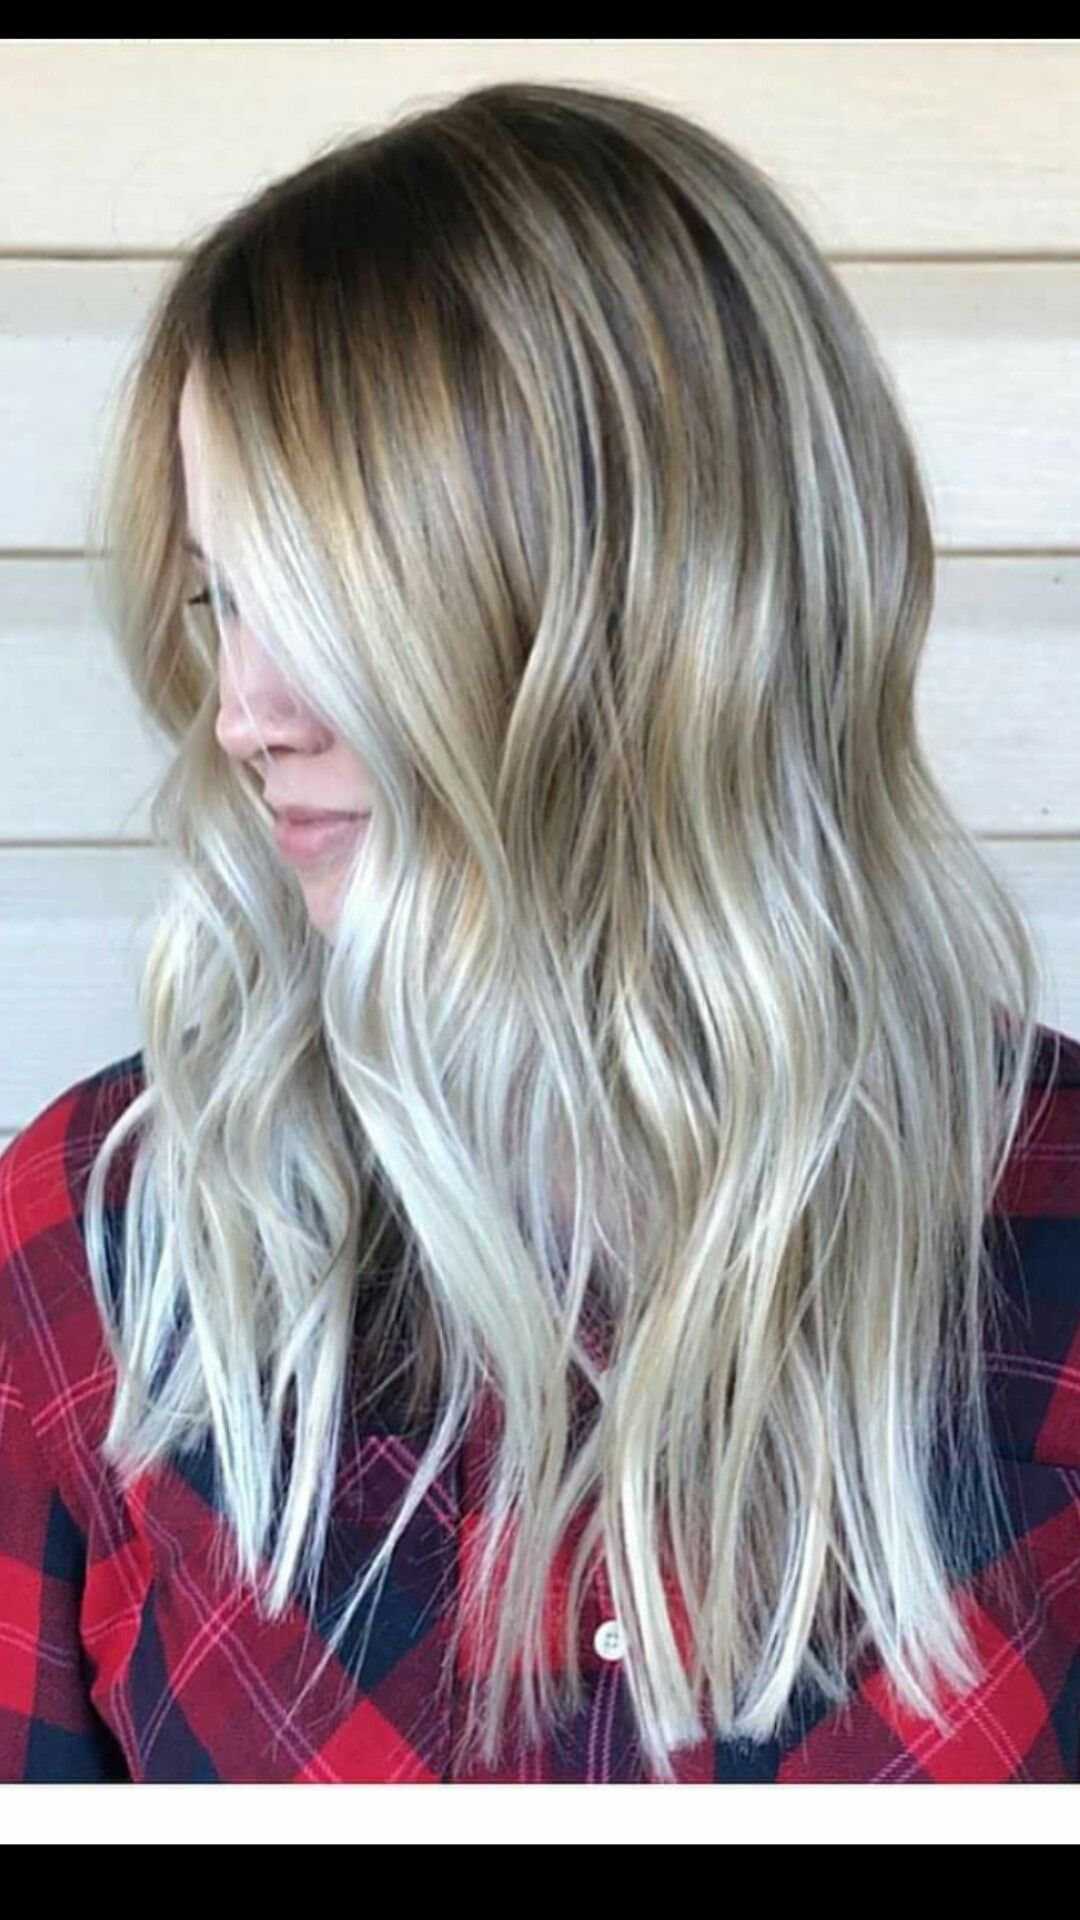 My new cut and color. painted highlights balayage blonde